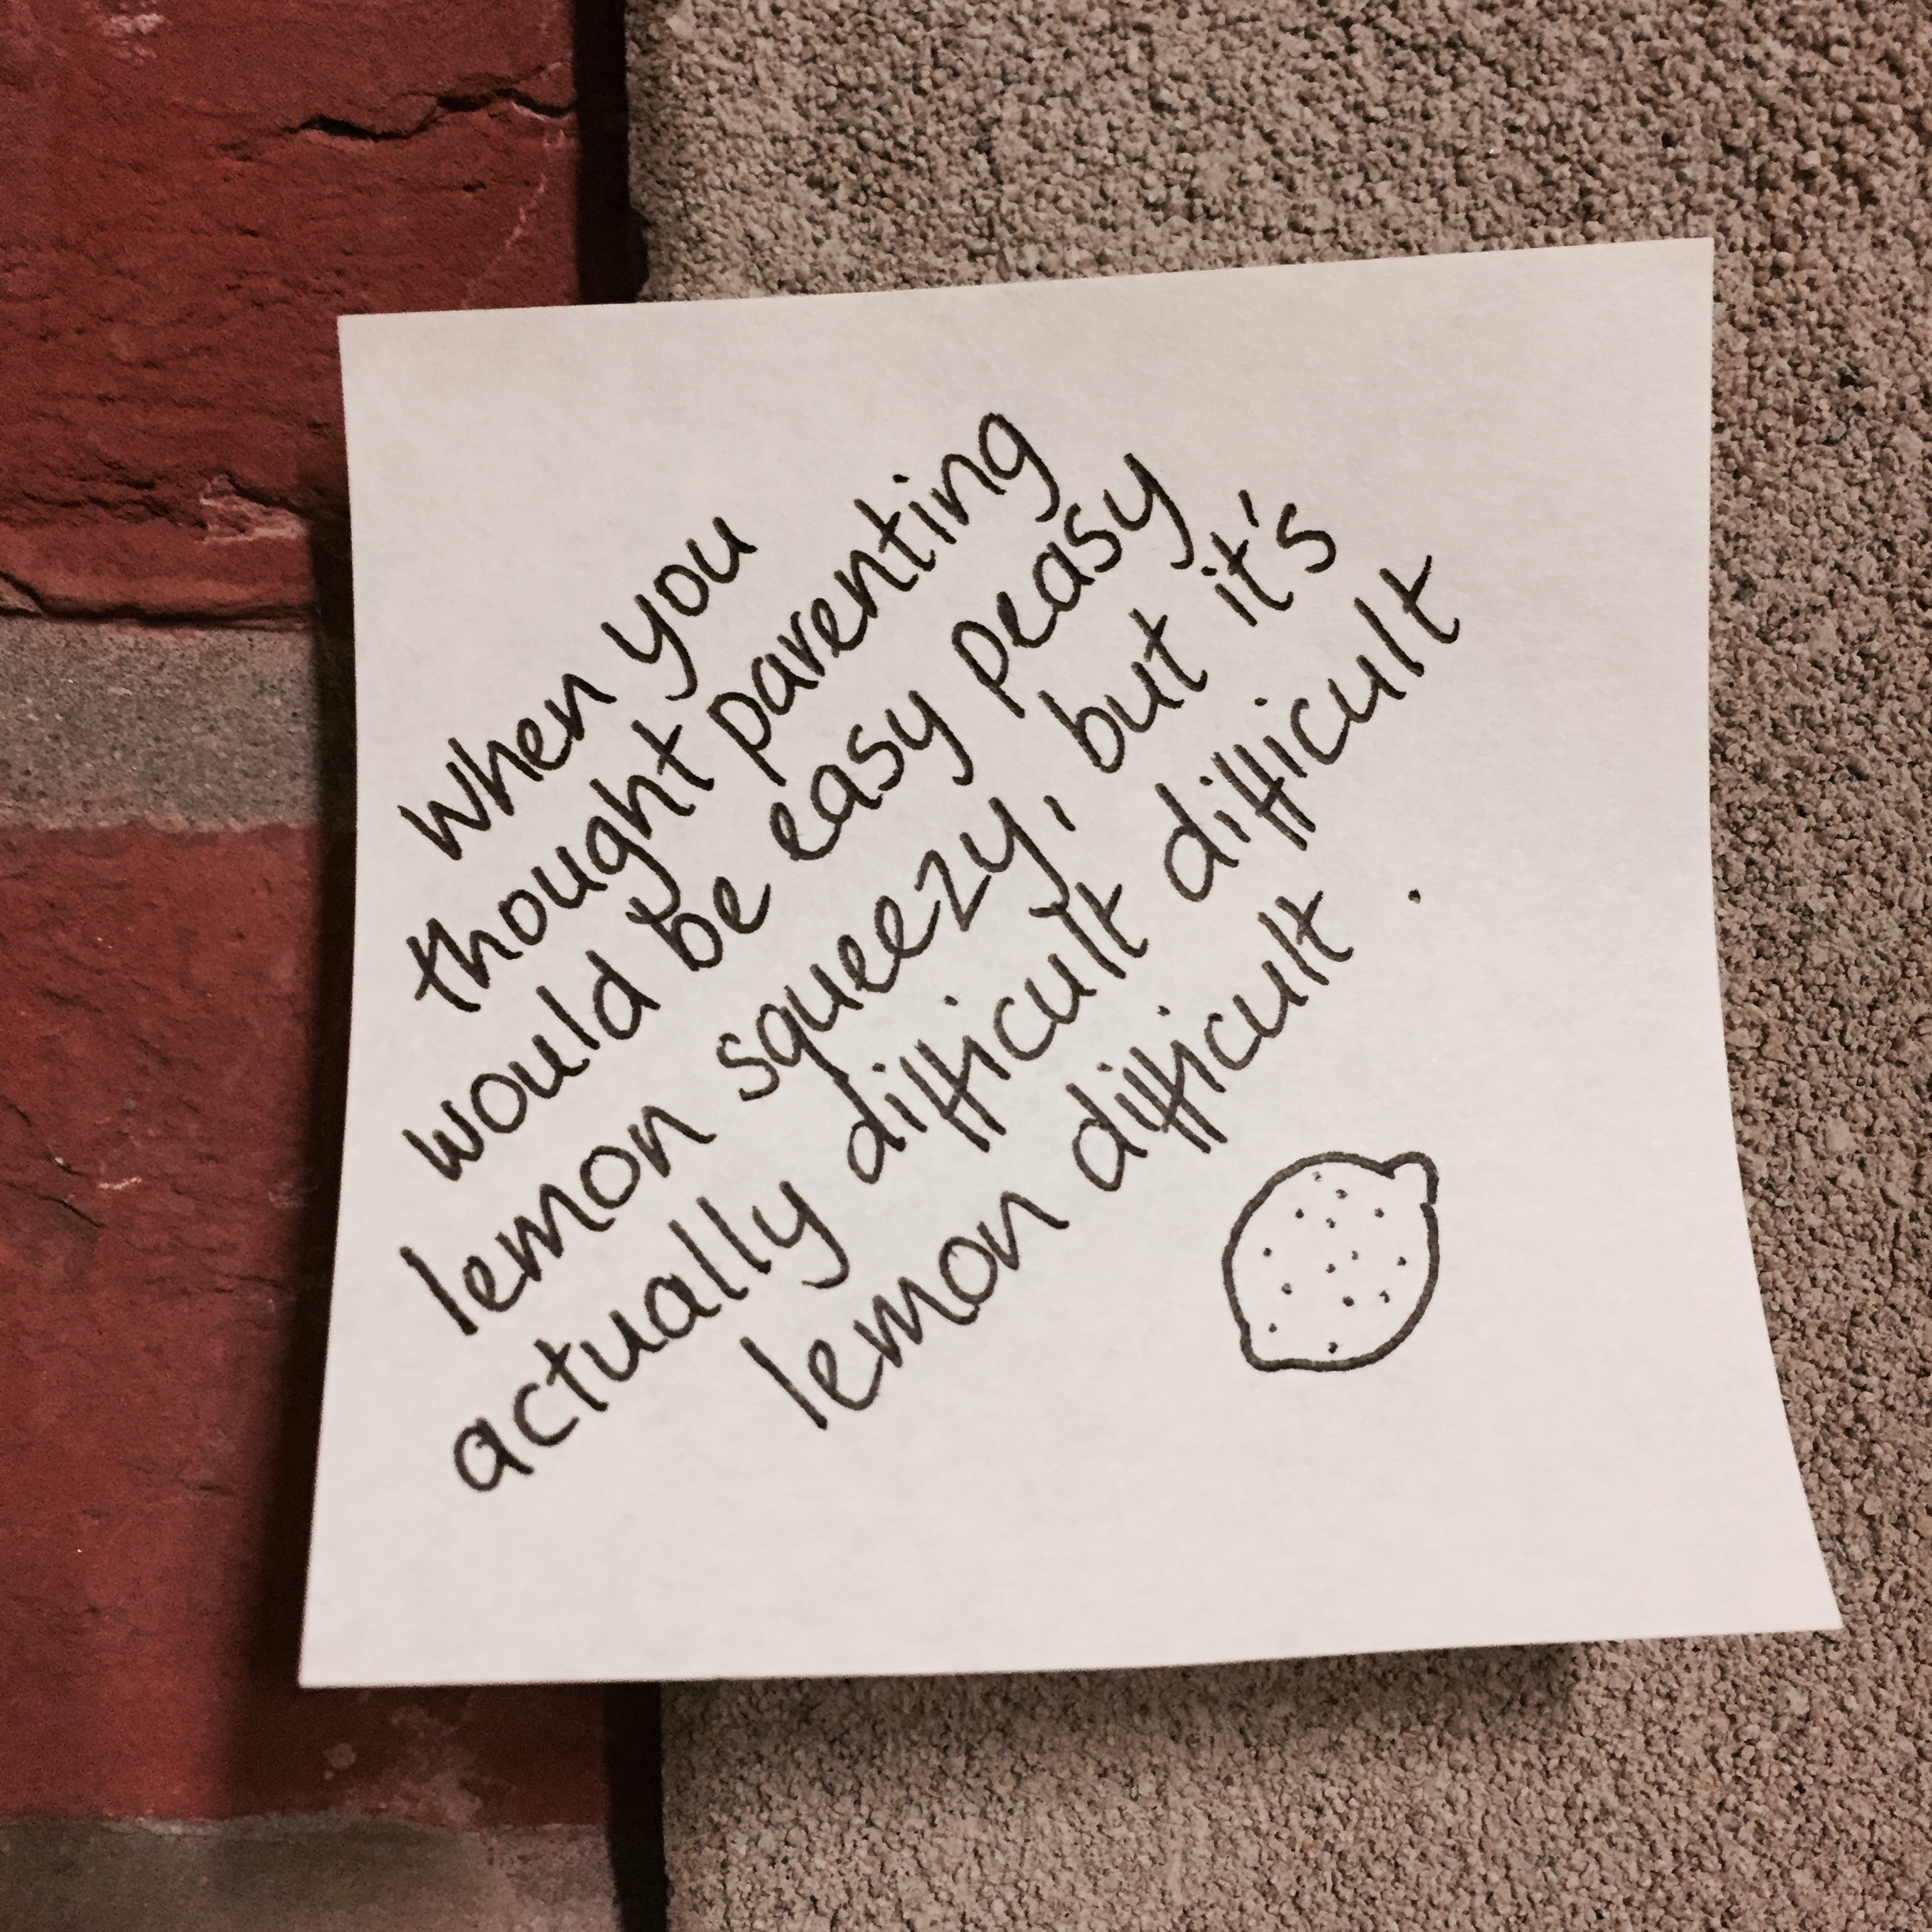 A post-it note on a brick wall.jpg